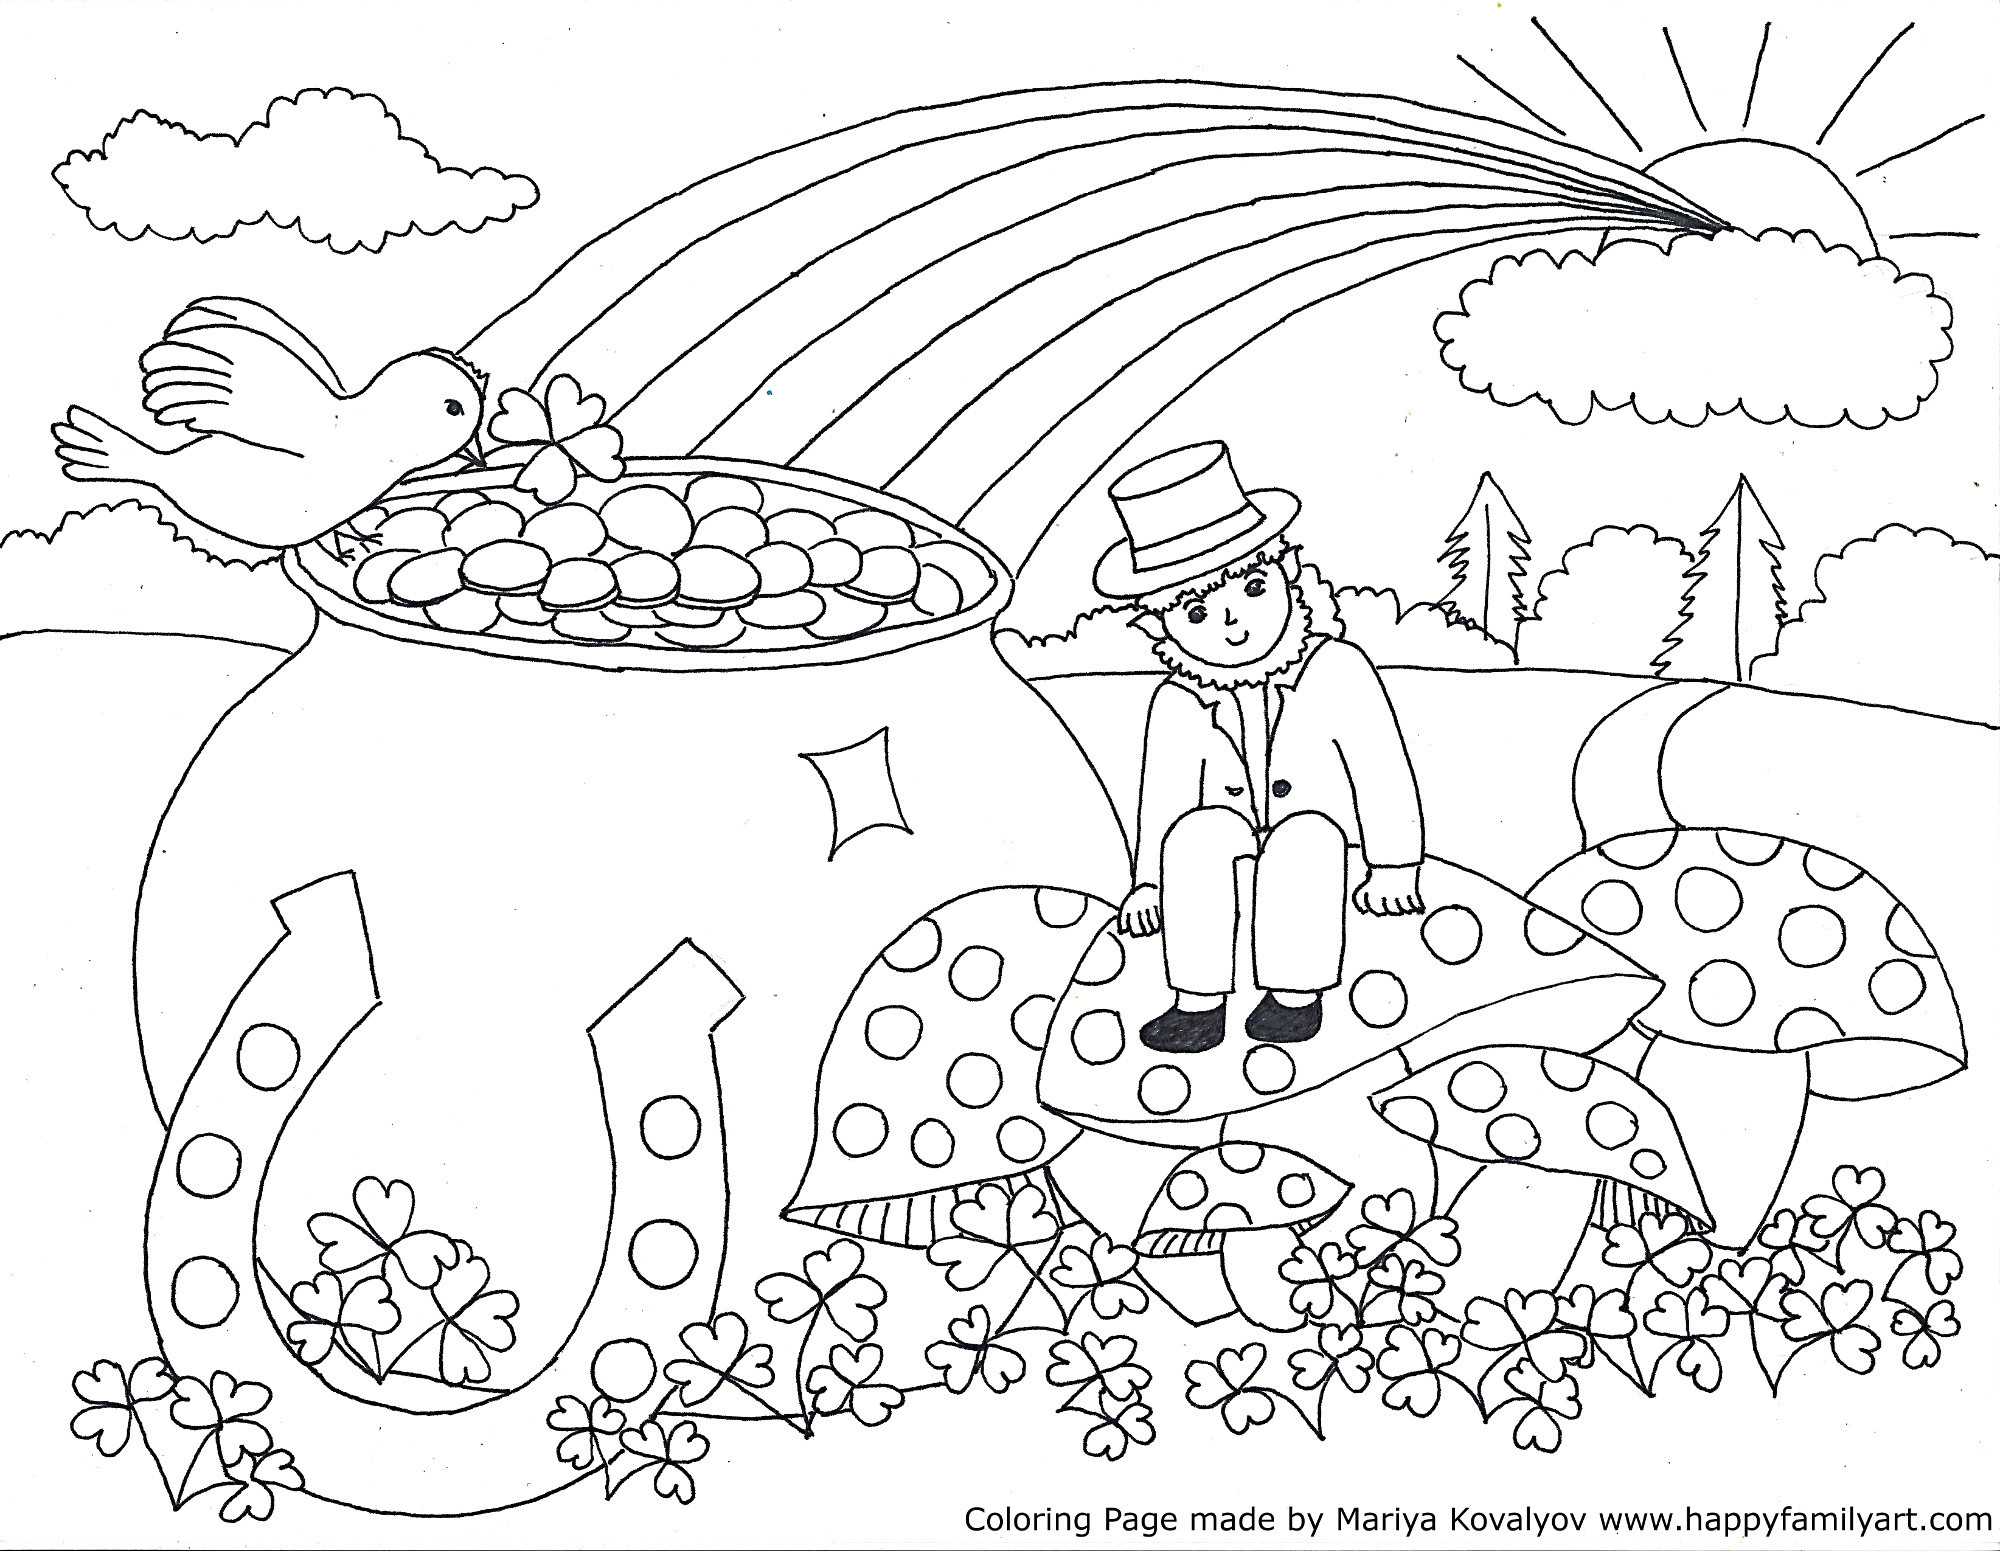 st patricks day coloring pages - St Patricks Day Coloring Pages